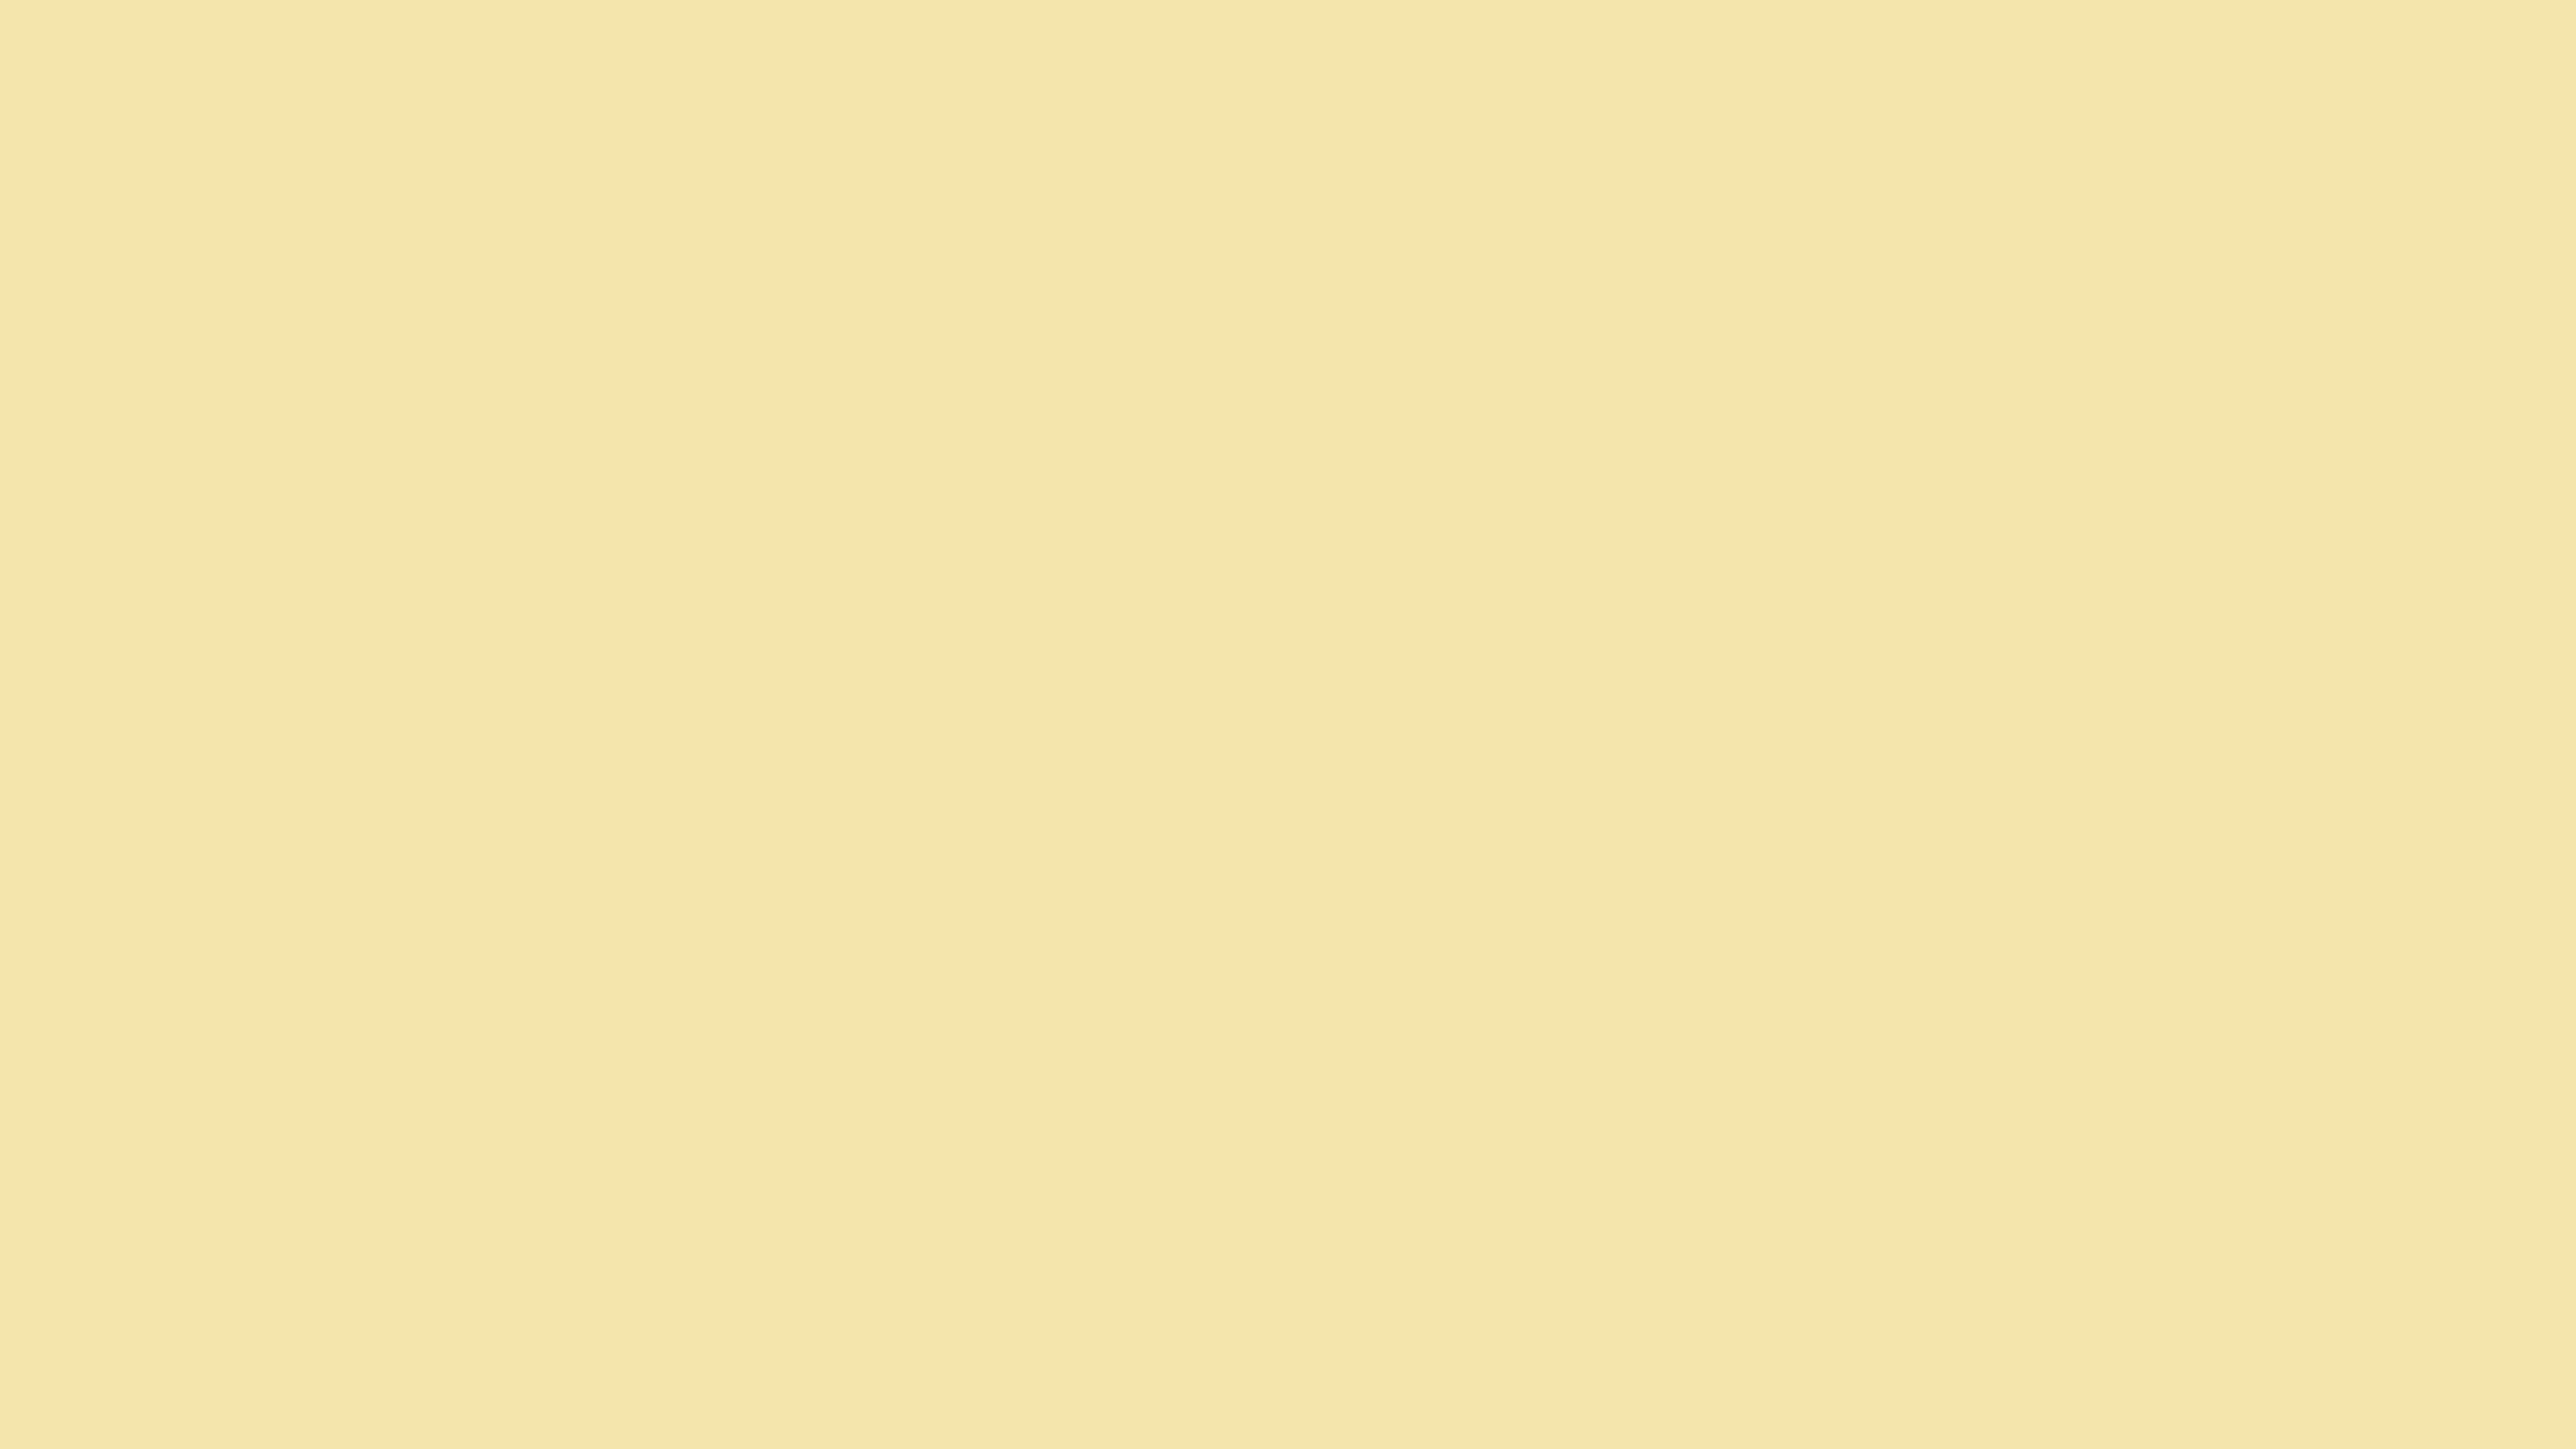 3840x2160 Medium Champagne Solid Color Background